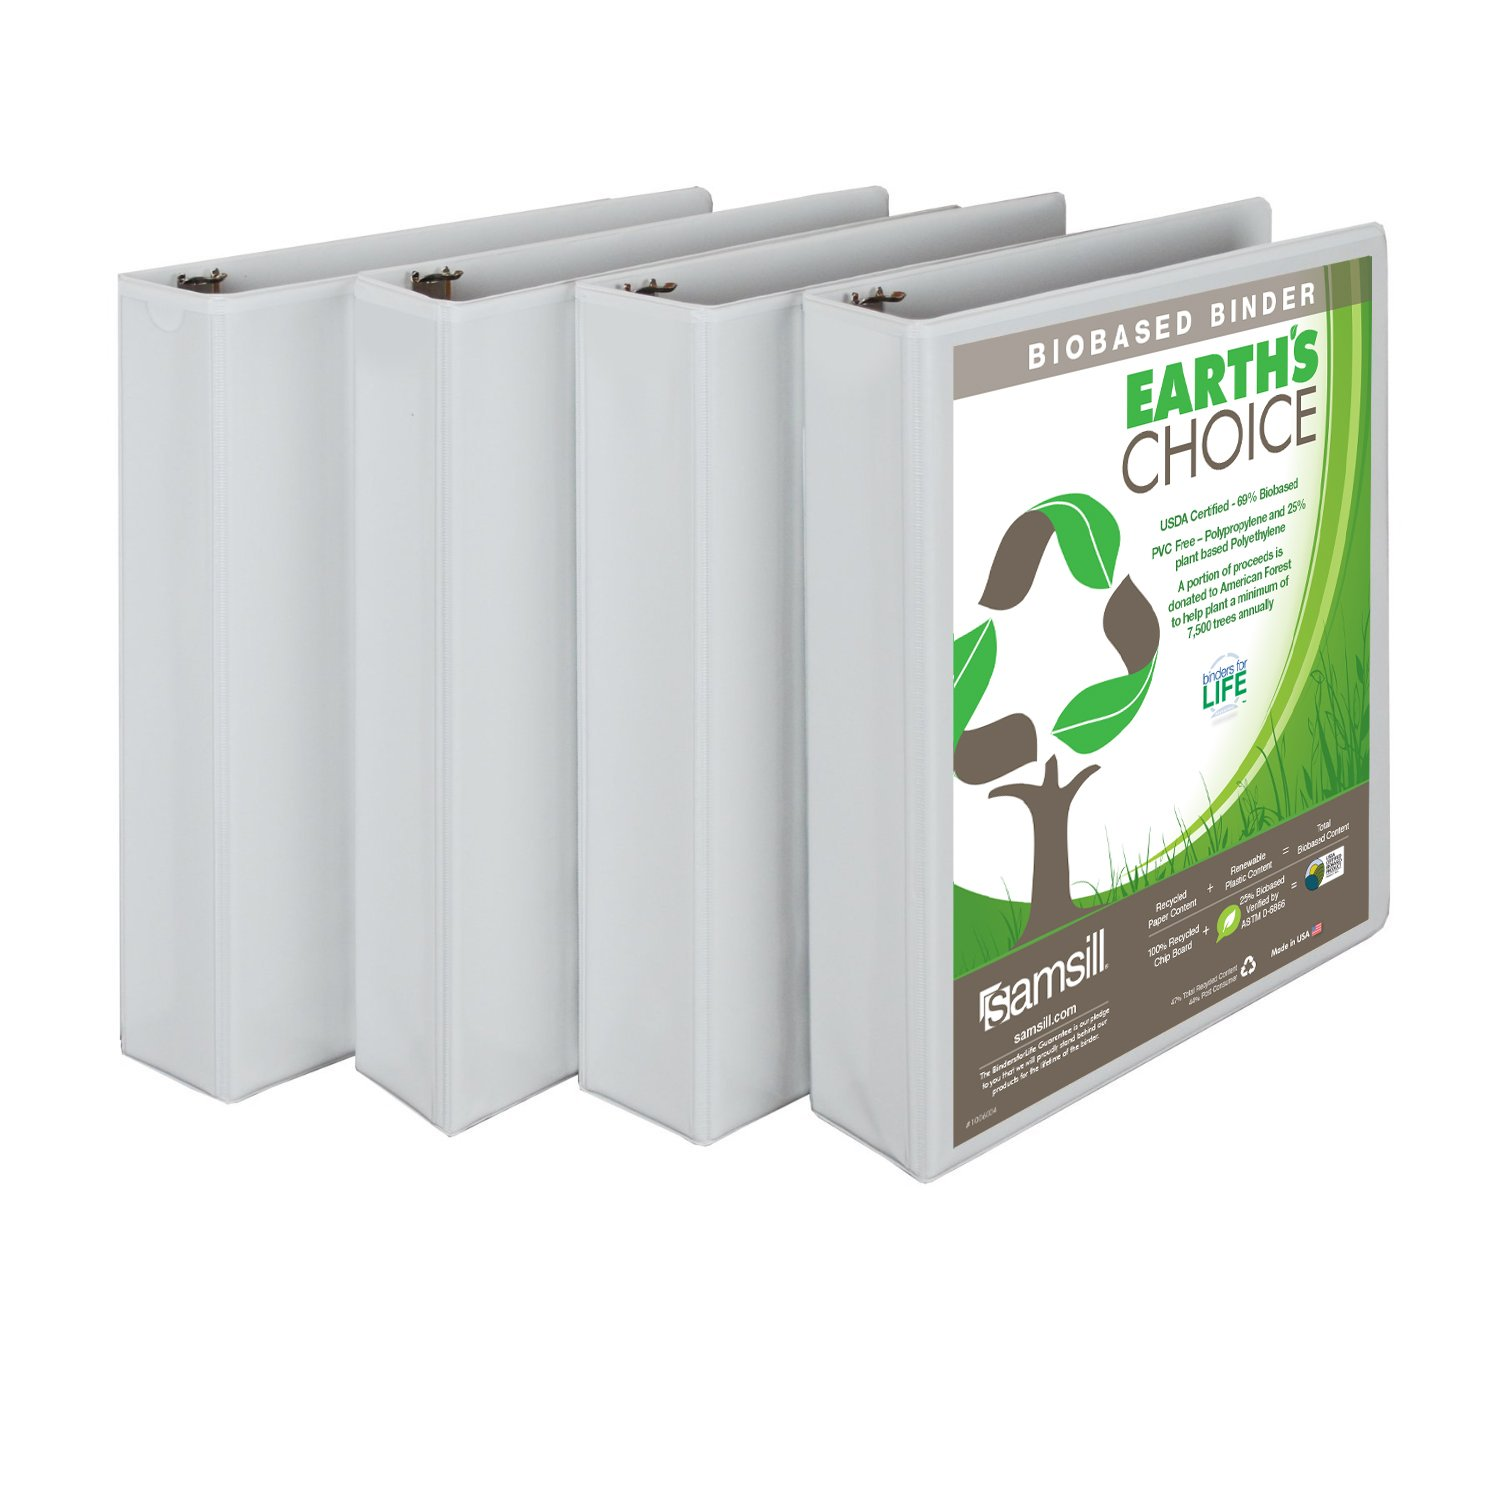 Samsill Earth's Choice Biobased View Binder, 3 Ring Binder, 1.5 Inch, Round Ring, Customizable, White, 4 Pack